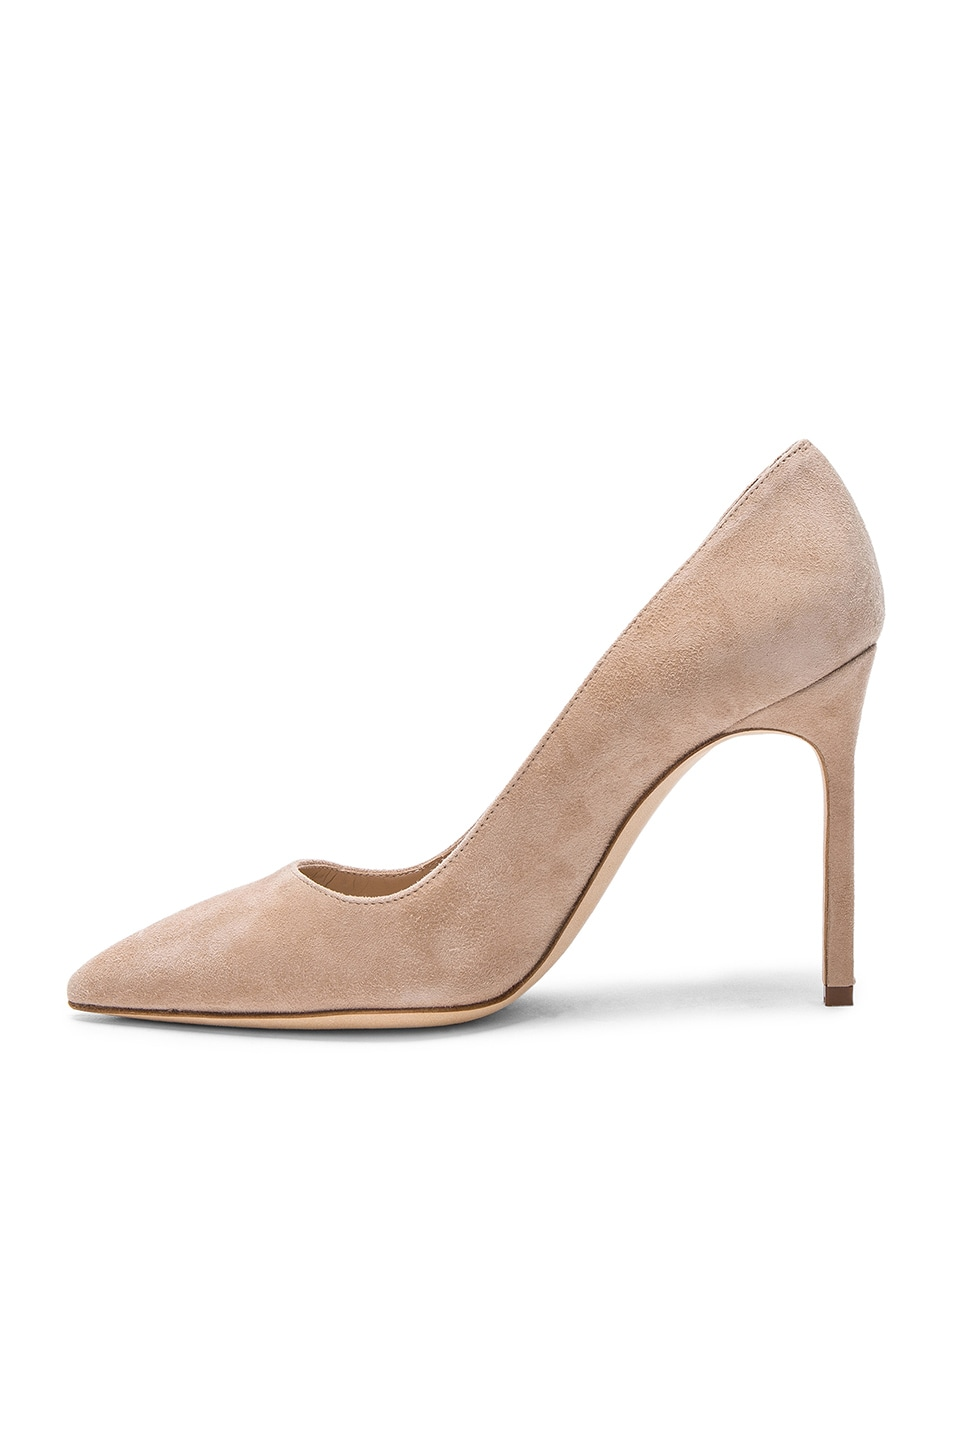 Image 5 of Manolo Blahnik BB 105 Suede Pumps in Nude Suede